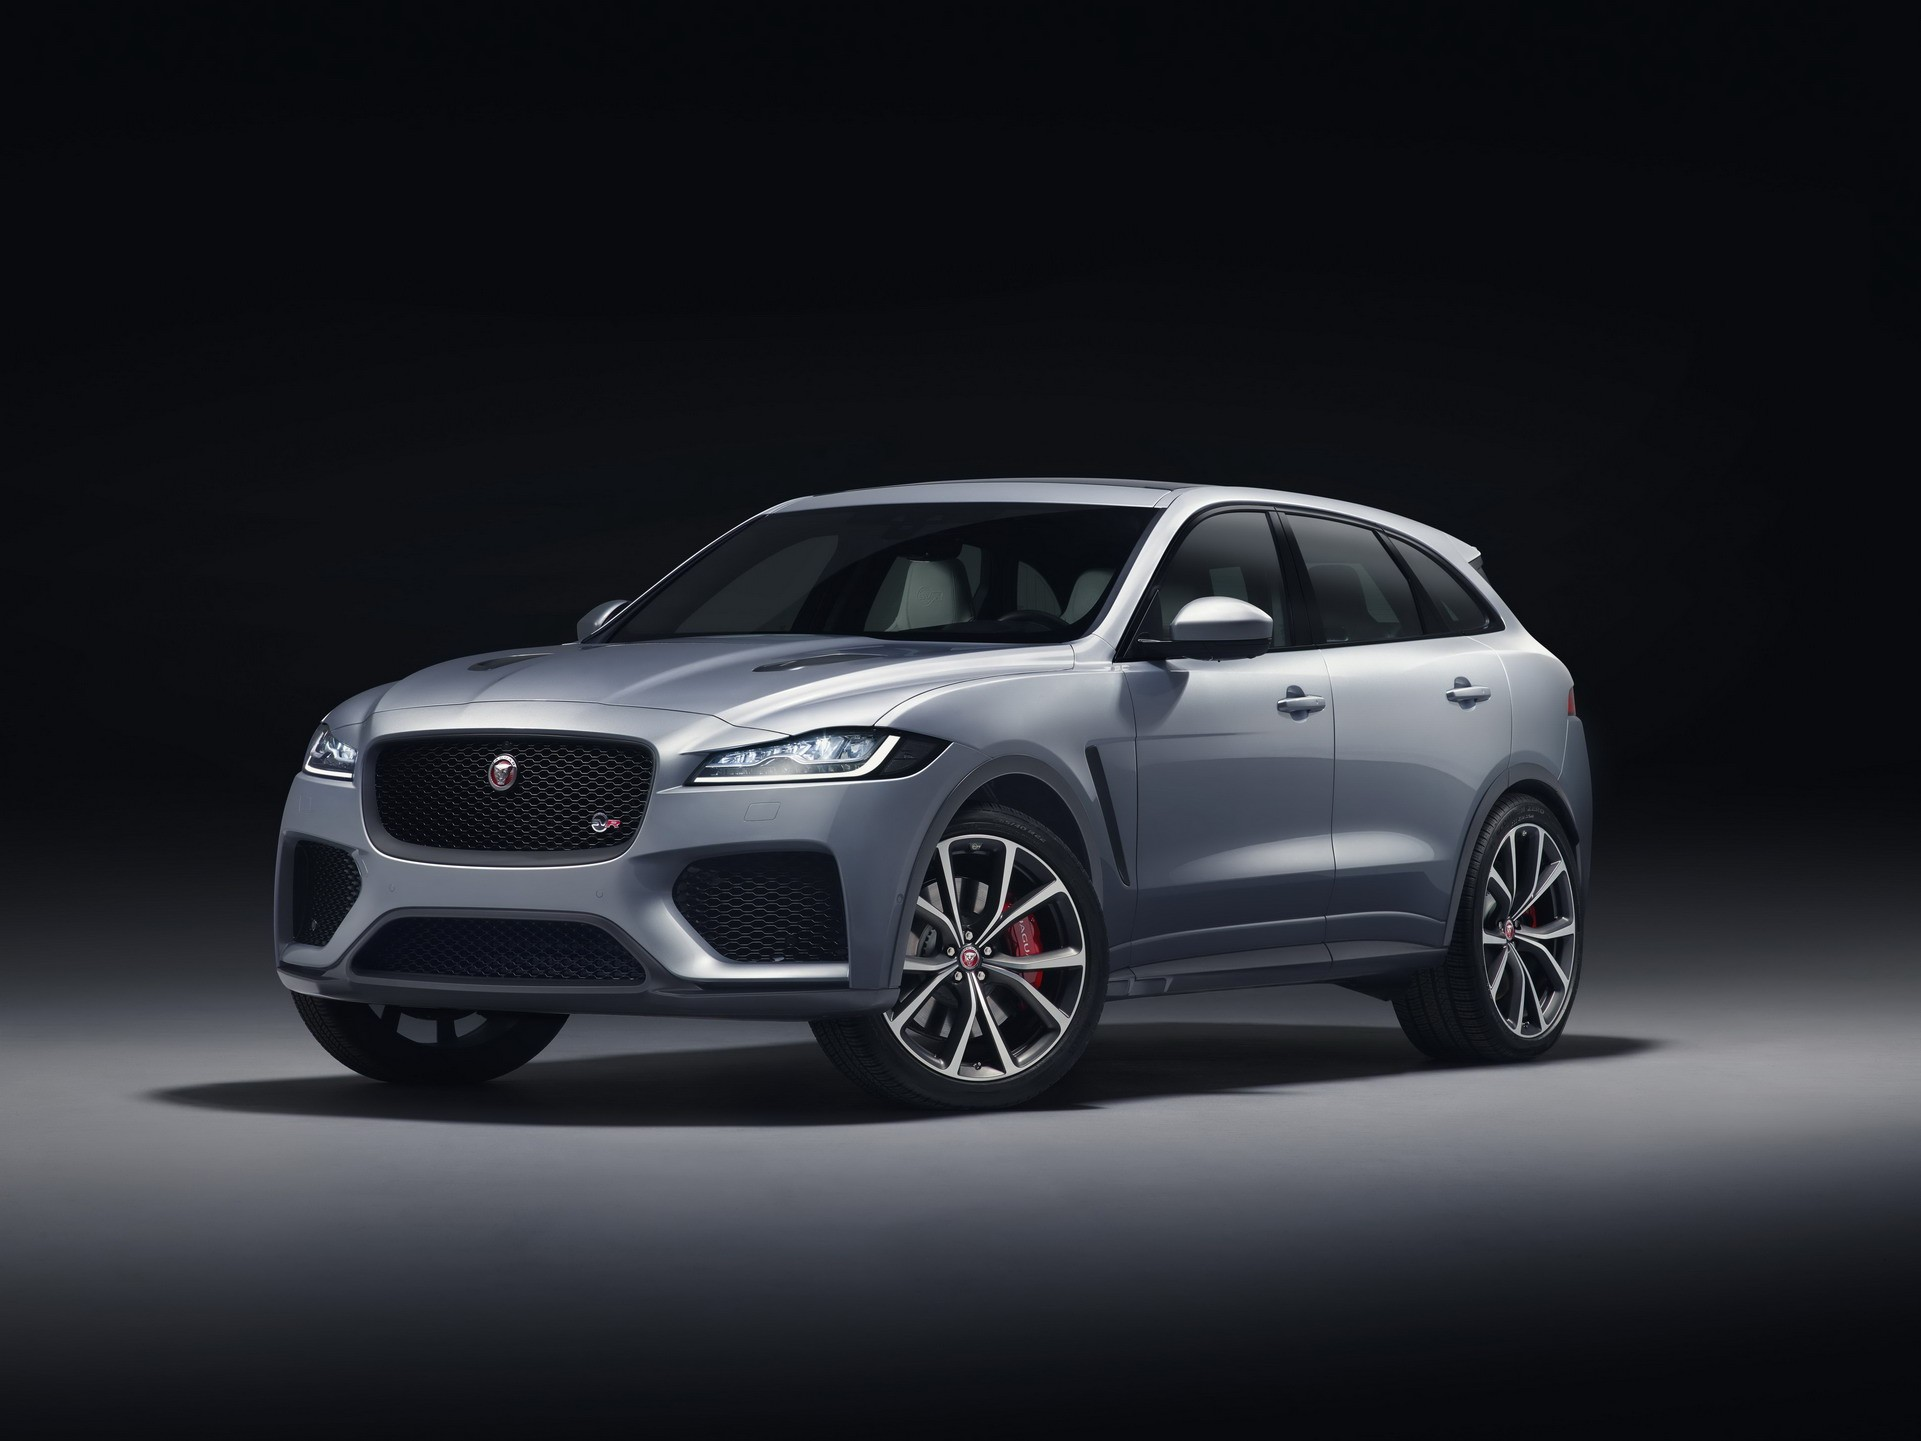 Compact Suv Australia >> Large Jaguar SUV Considered, Electric Compact Hatchback Also Possible - autoevolution